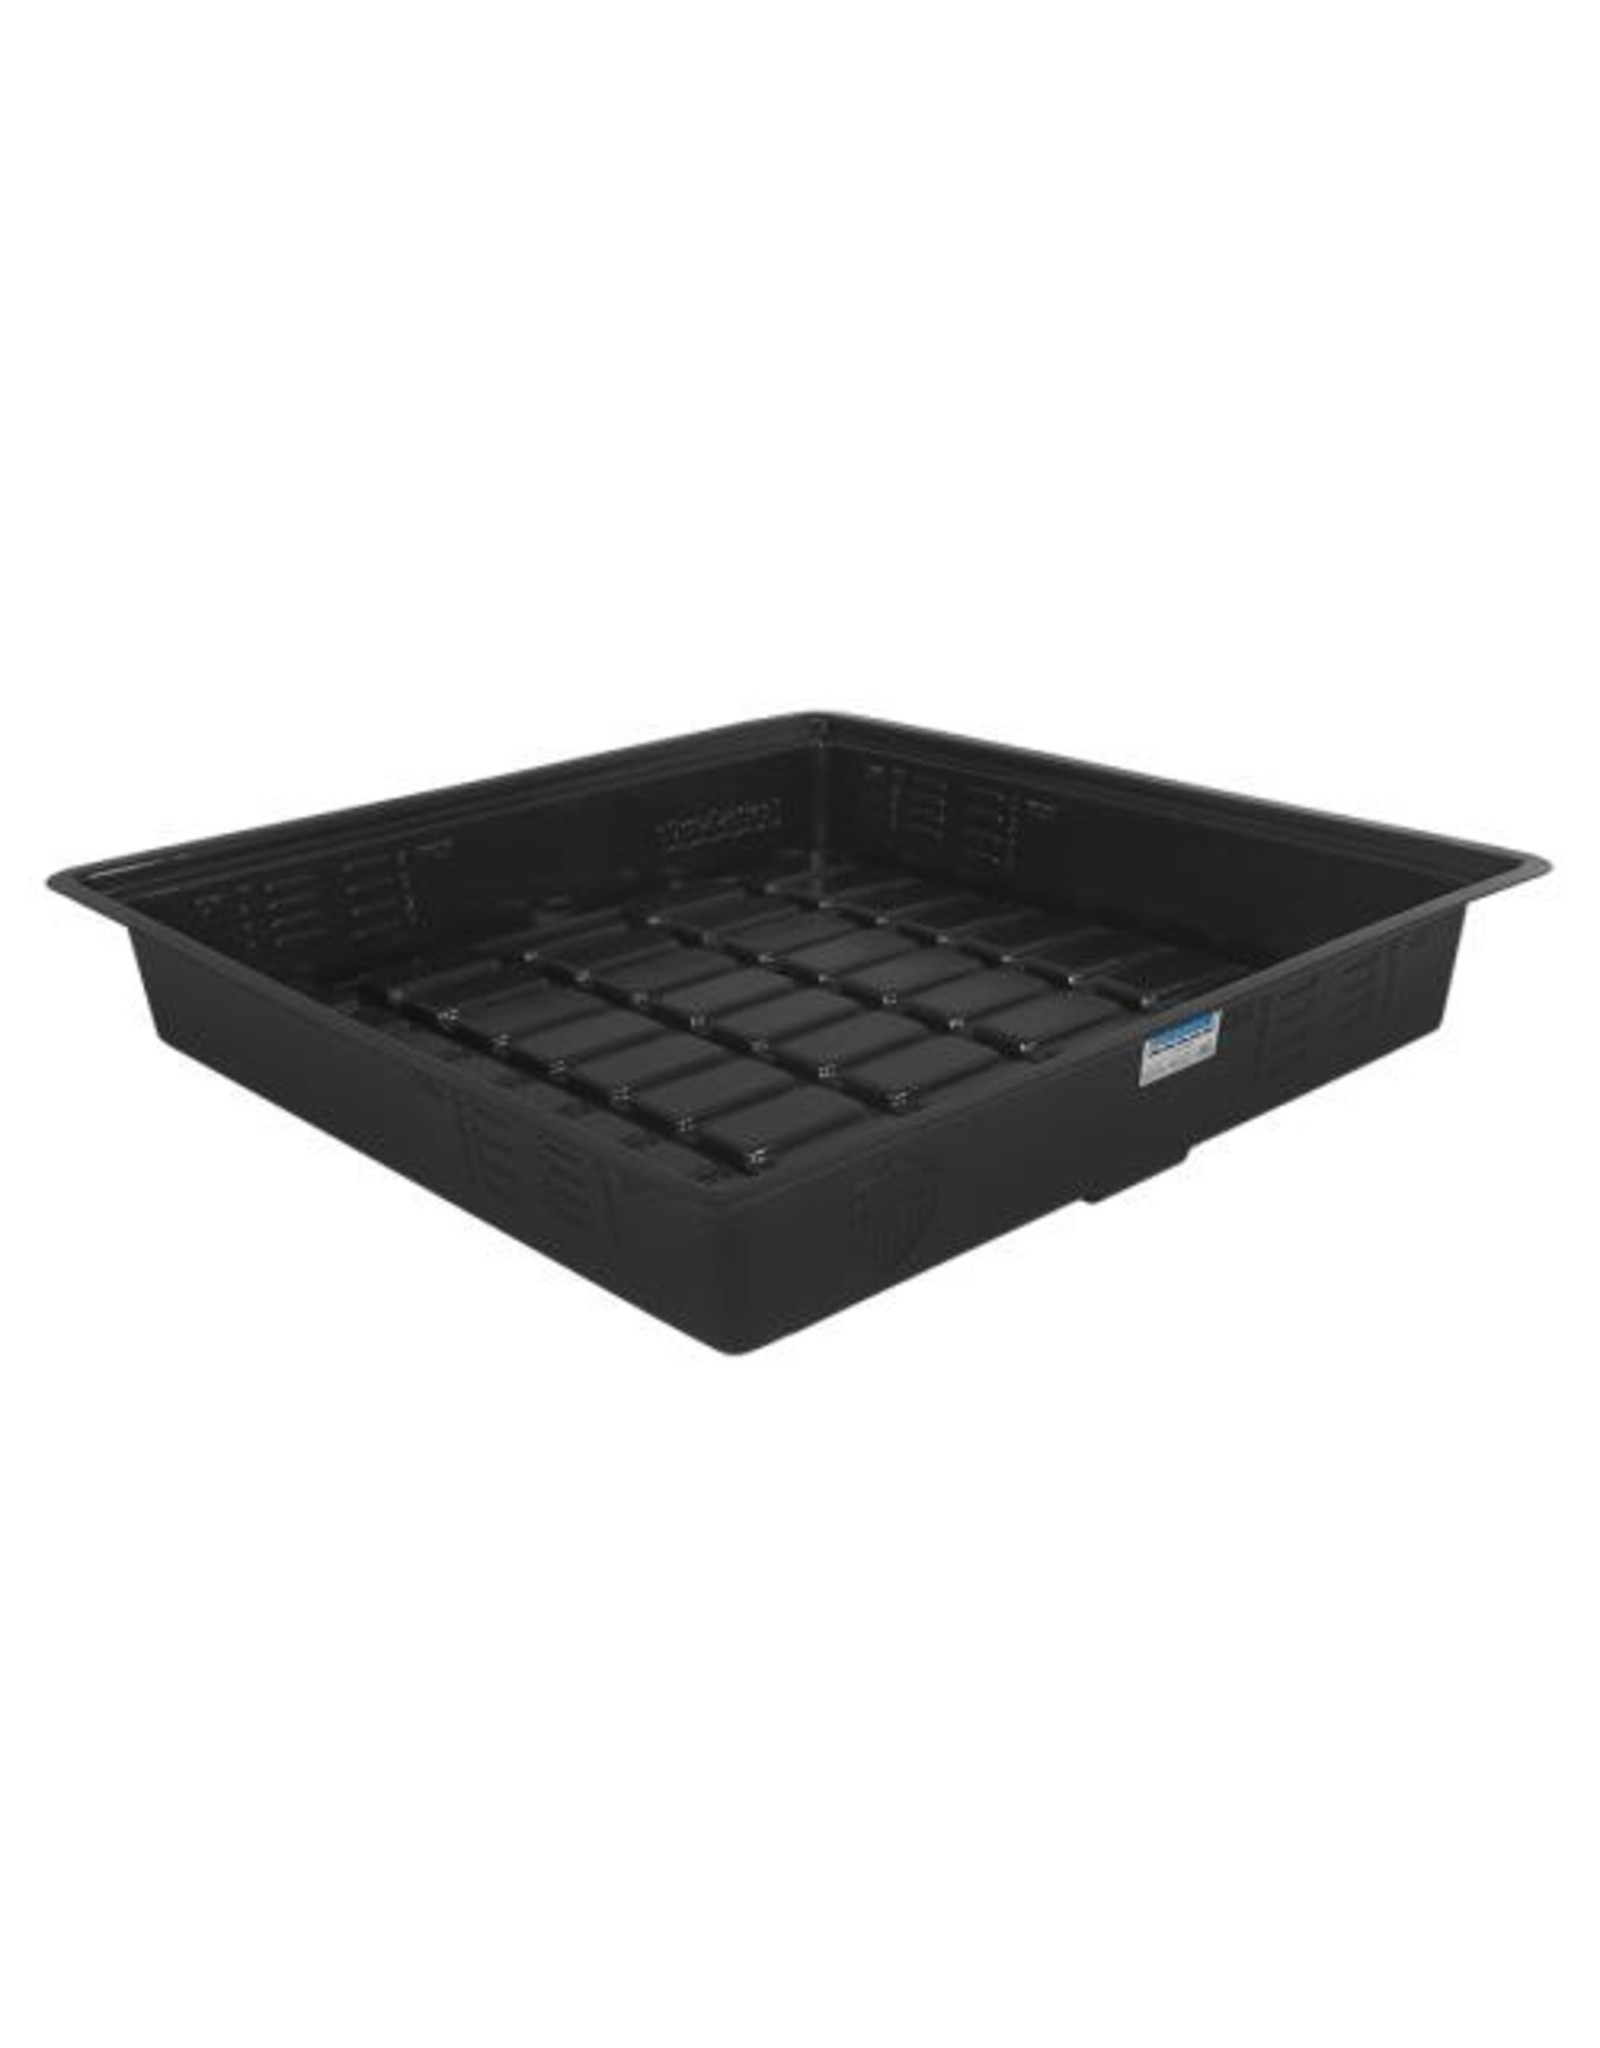 Grow Systems/Trays/Reservoirs Duralastics Tray 3 ft x 3 ft ID - Black